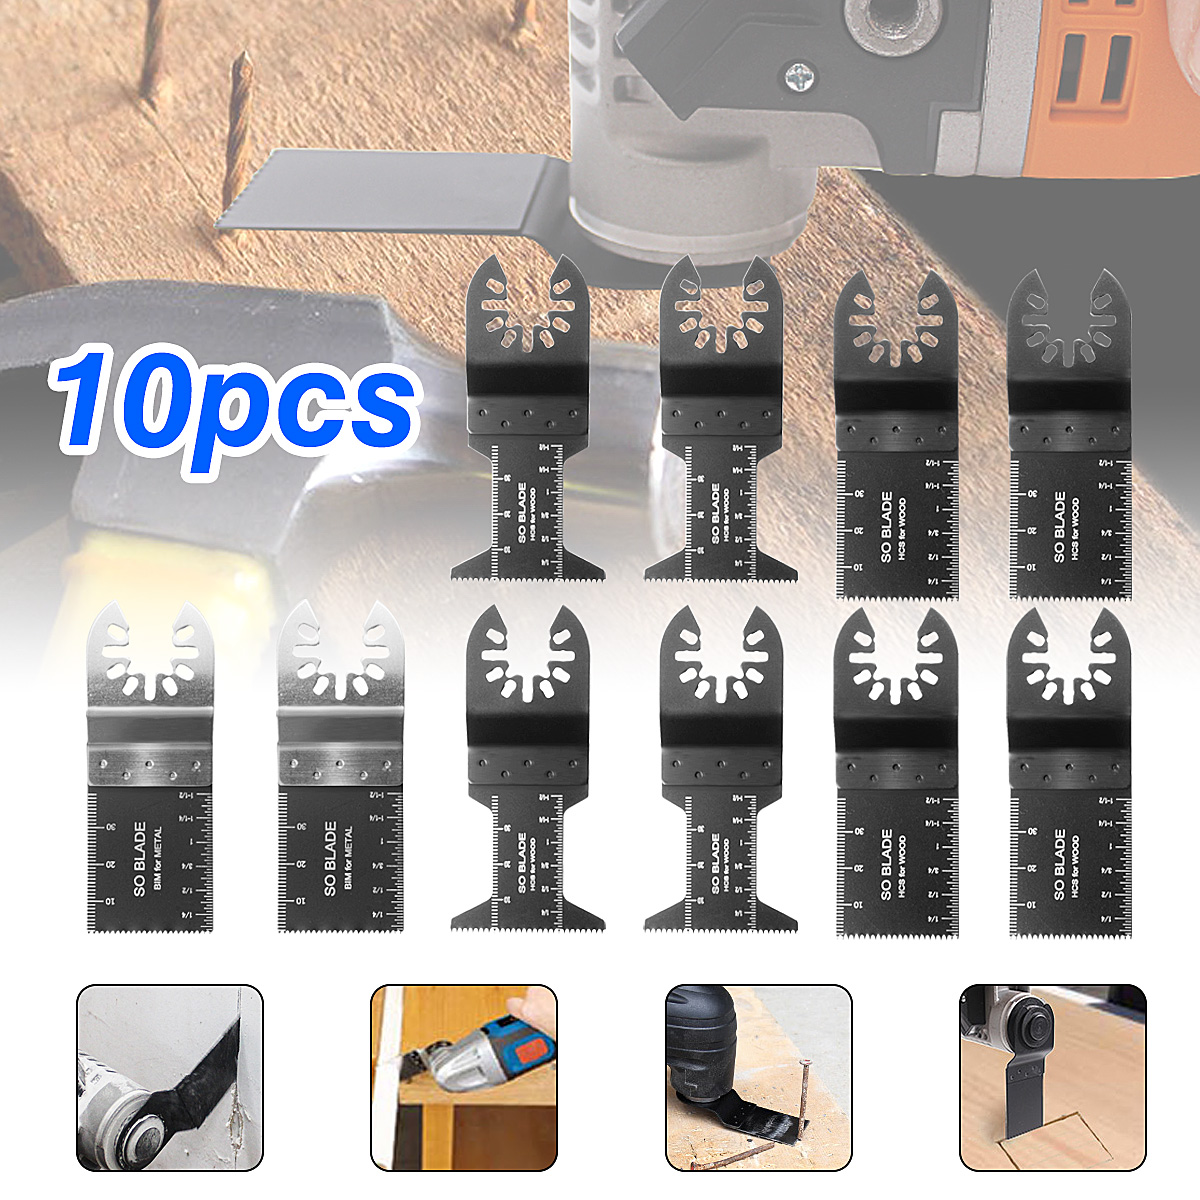 10Pcs Multitool Saw Blade Oscillating Blade Multi Tool Saw For Renovator For Bosch,Fein Multimaster Wood Cutting Accessories Kit